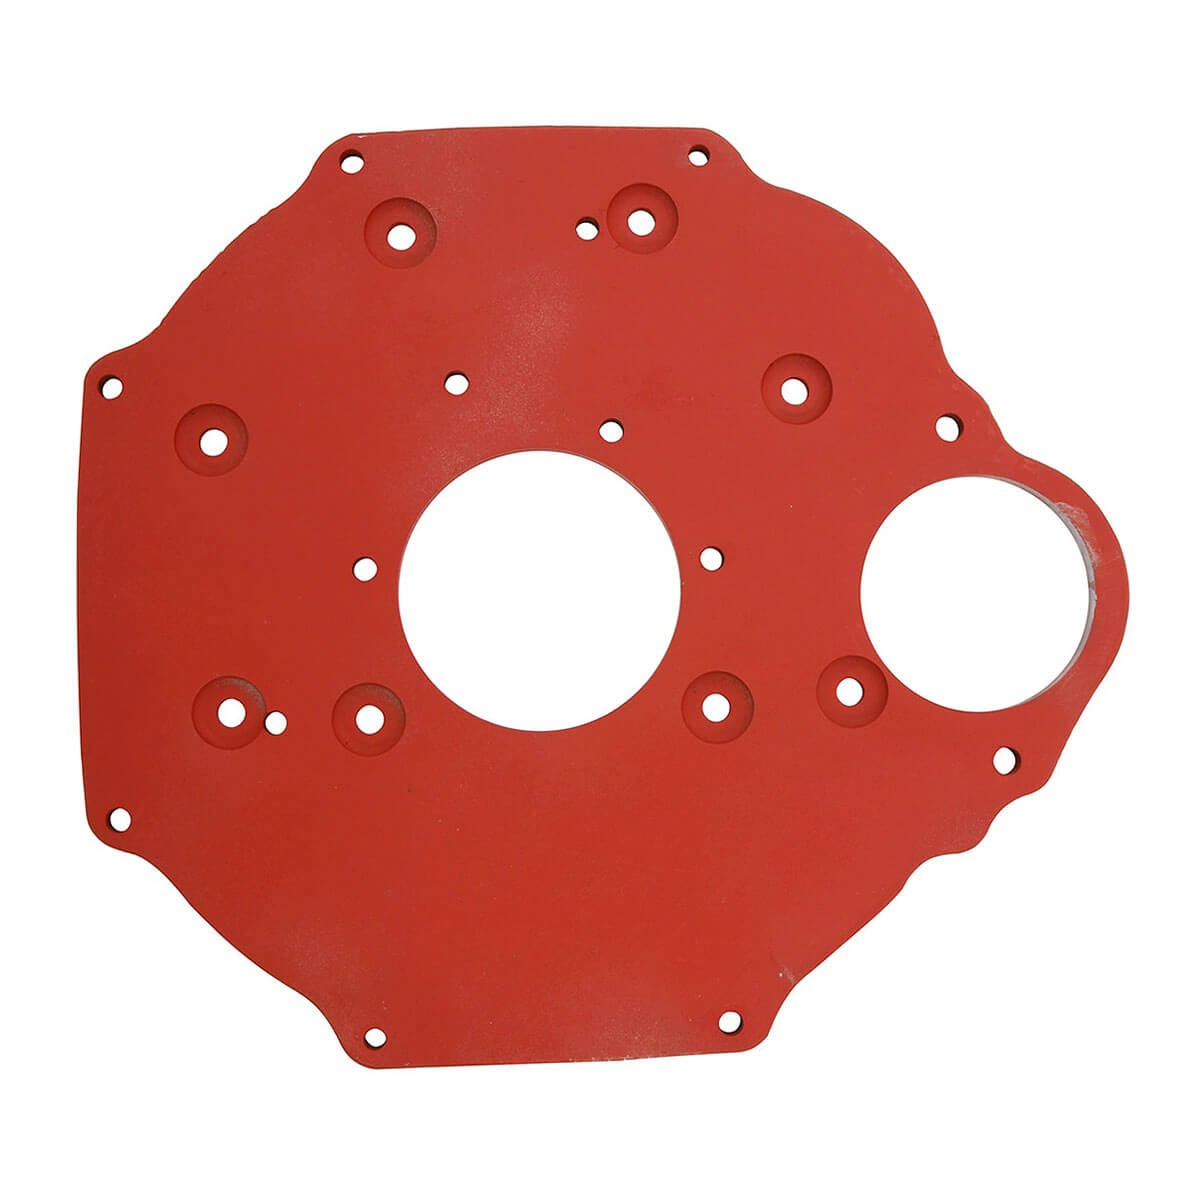 Engine Adapter Plate for MGB 5-Main Conversion - External